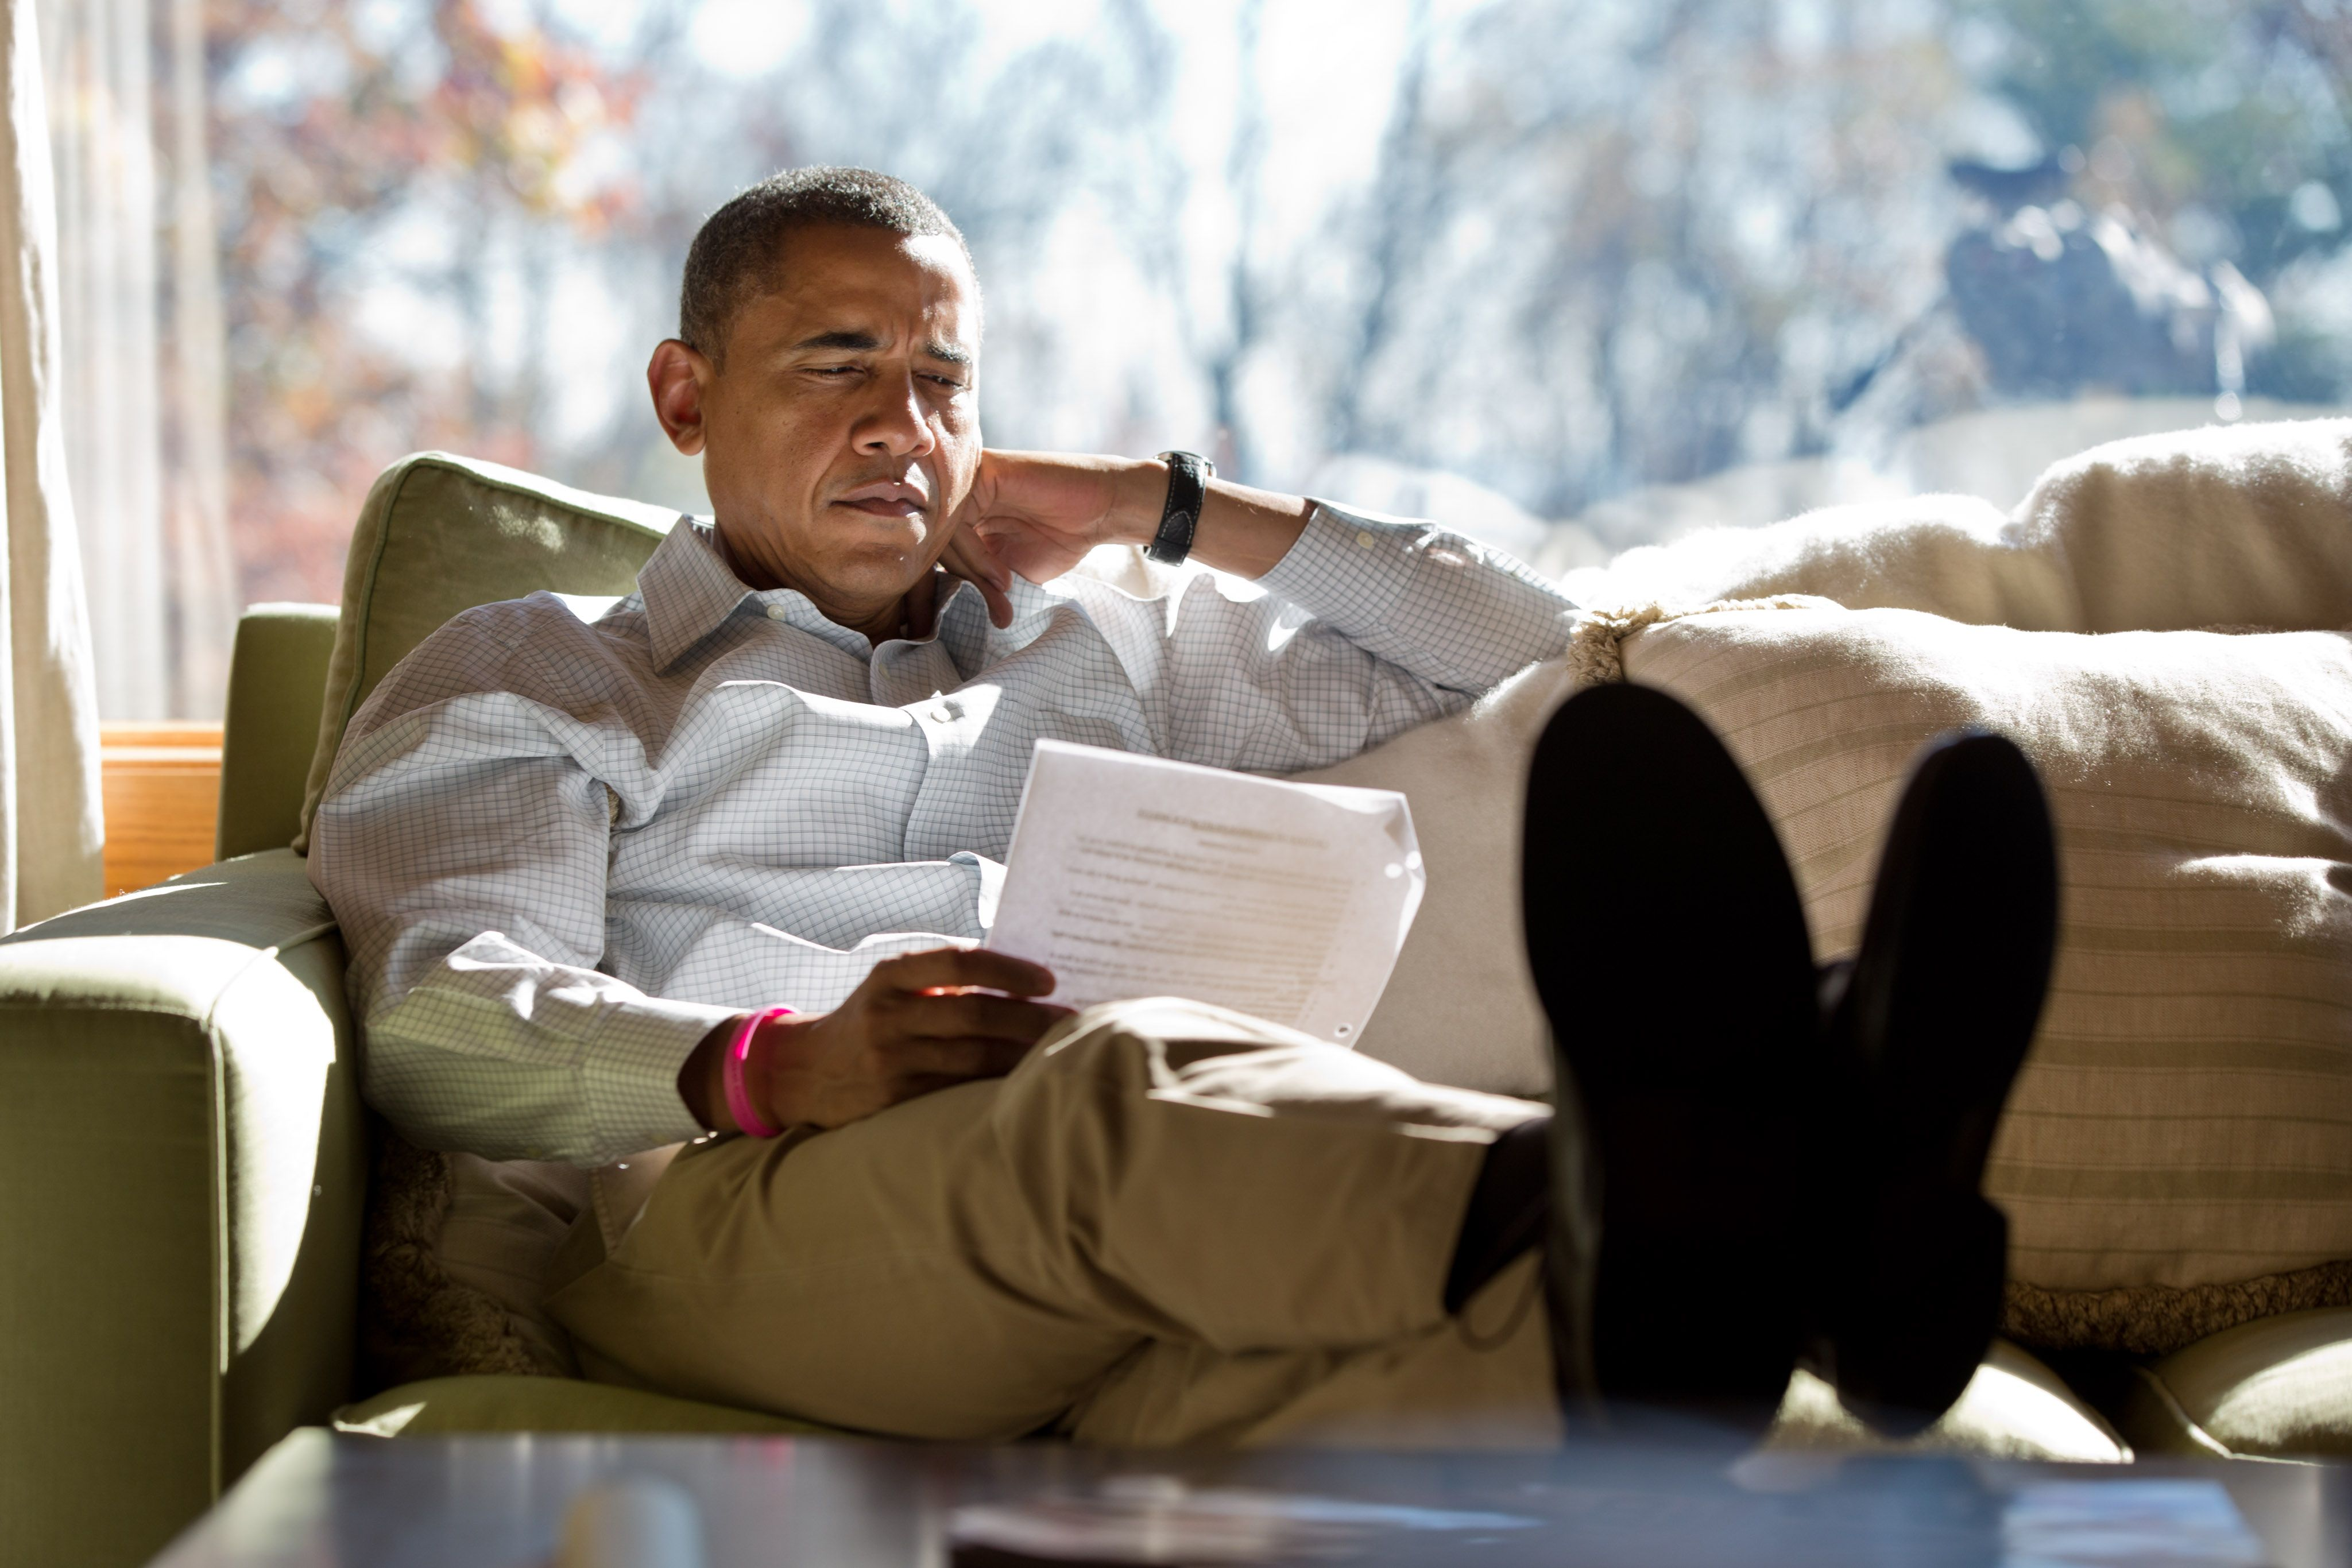 Barack Obama's Summer 2019 Reading List Covers Everything From the Immigrant Experience to Outer Space